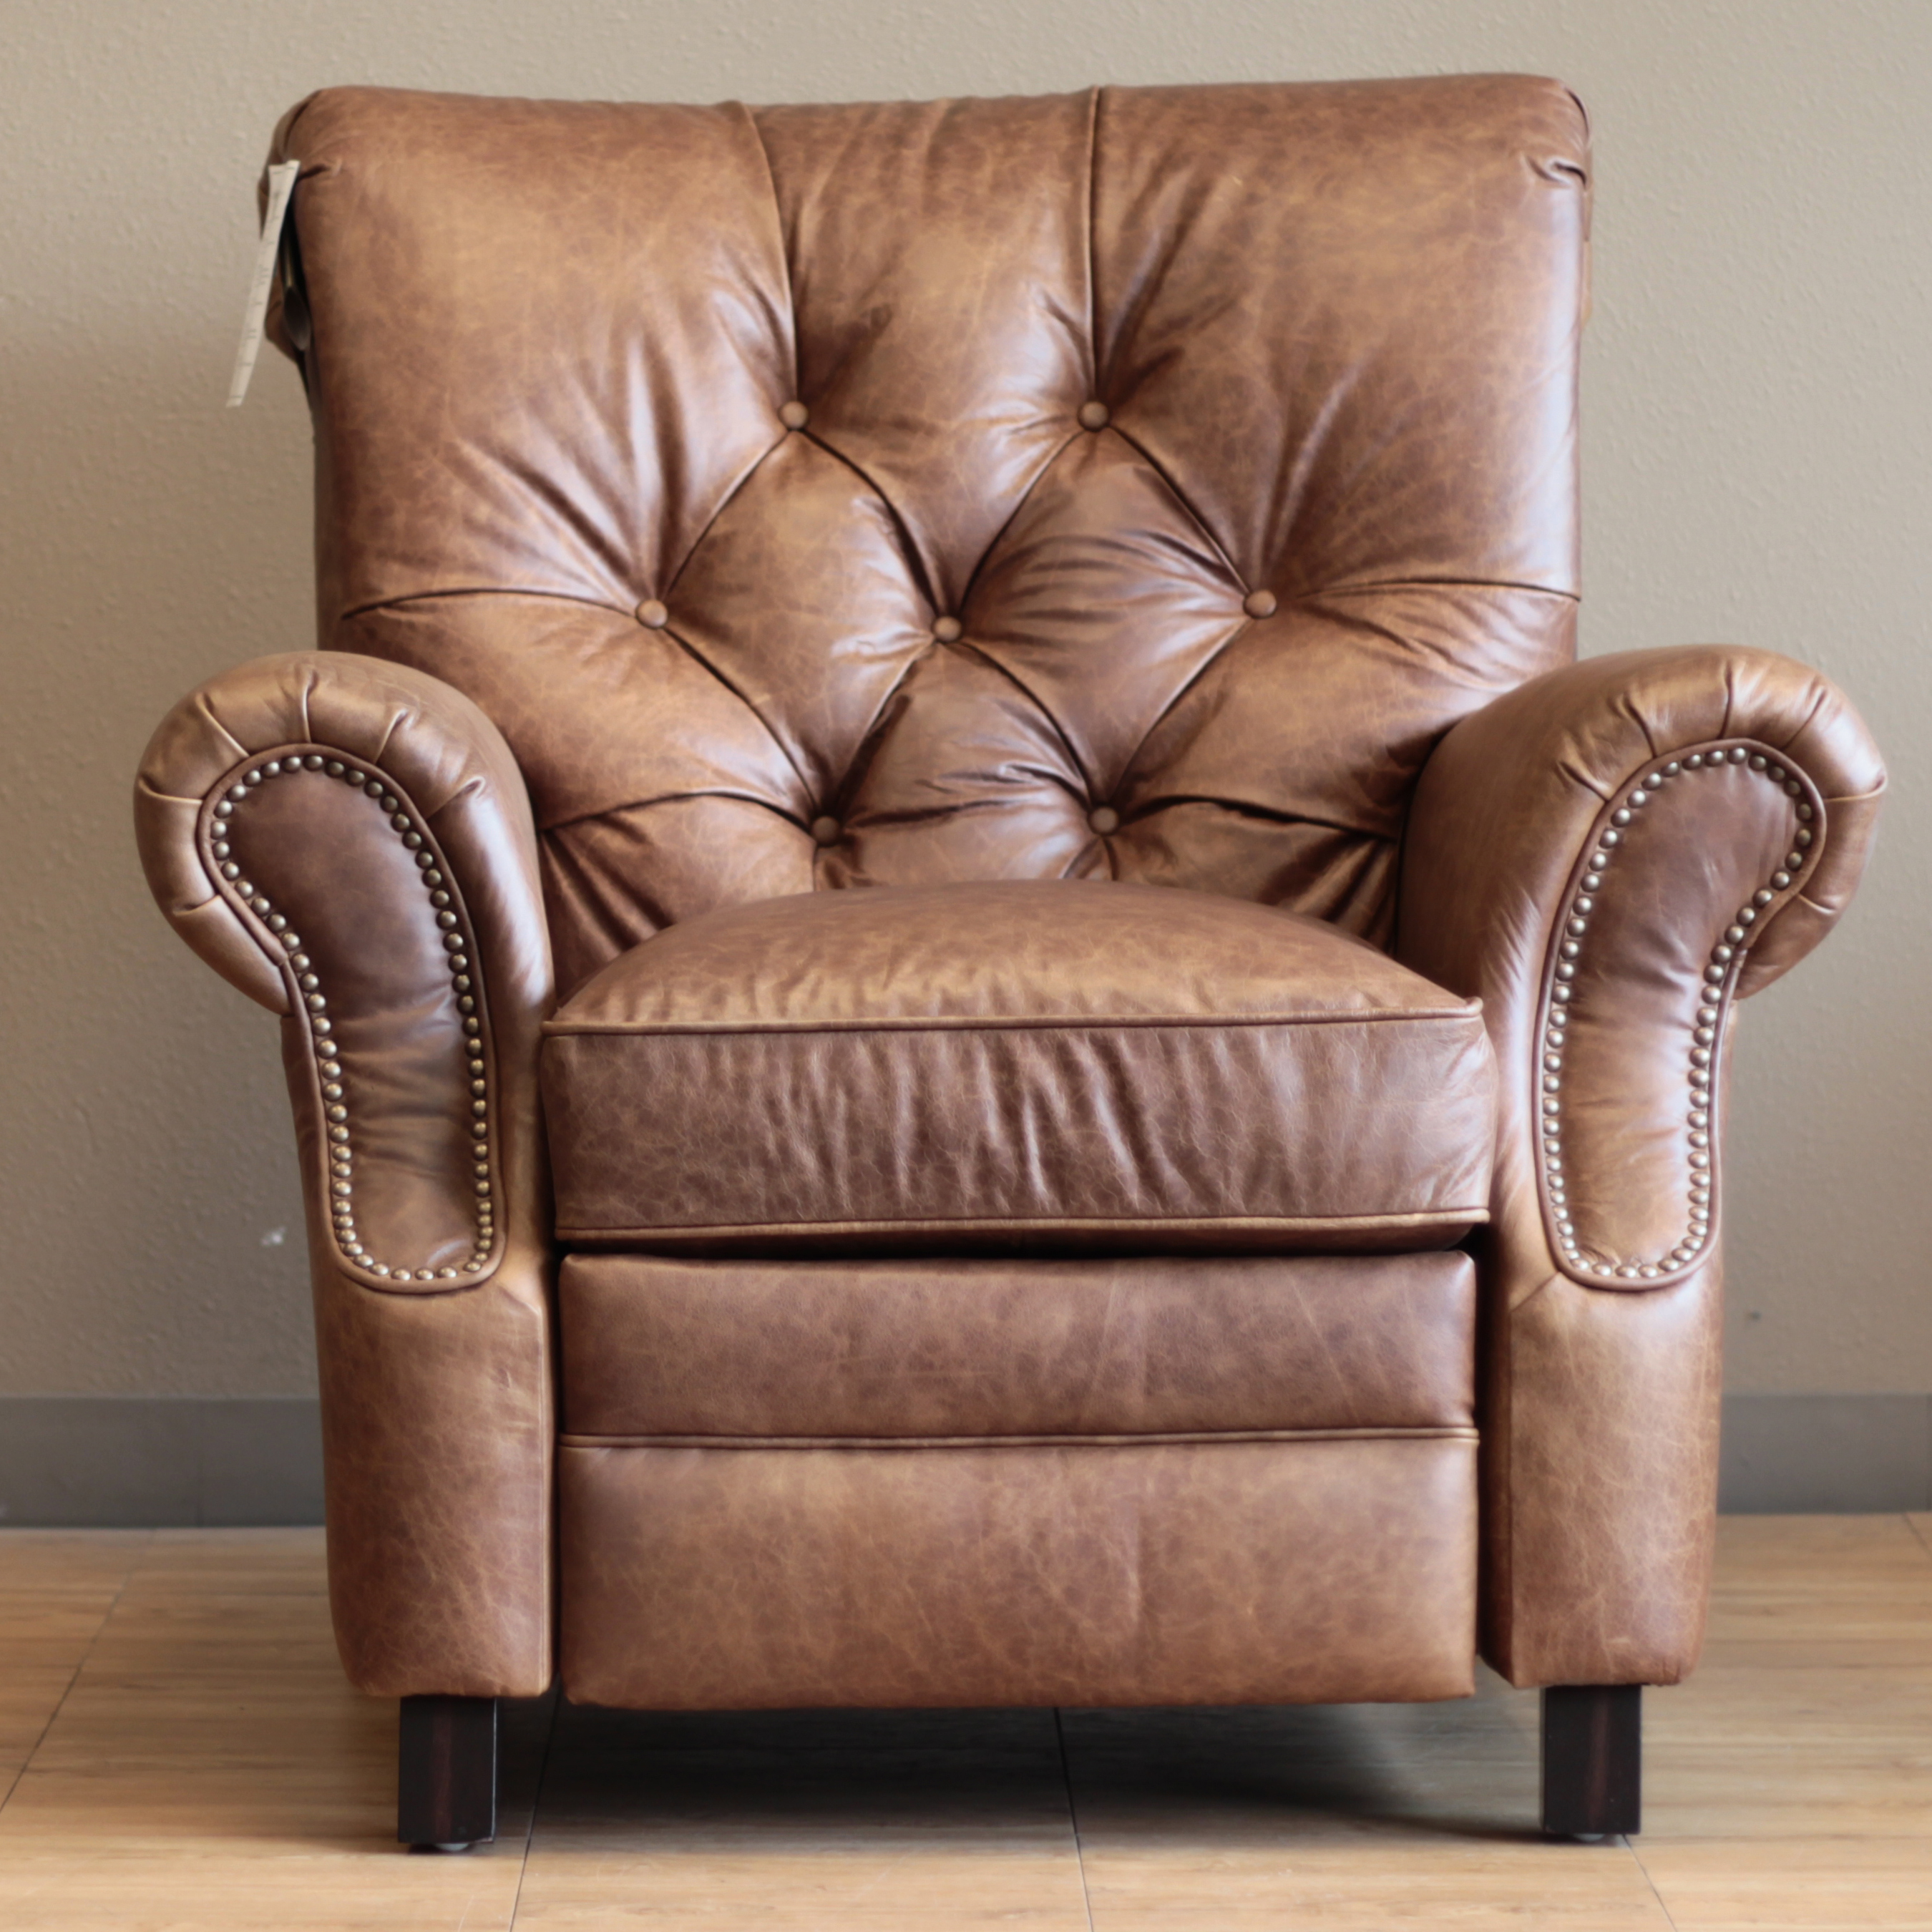 barcalounger phoenix ii leather recliner chairbarcalounger phoenix ii recliner chair leather recliner chair. beautiful ideas. Home Design Ideas